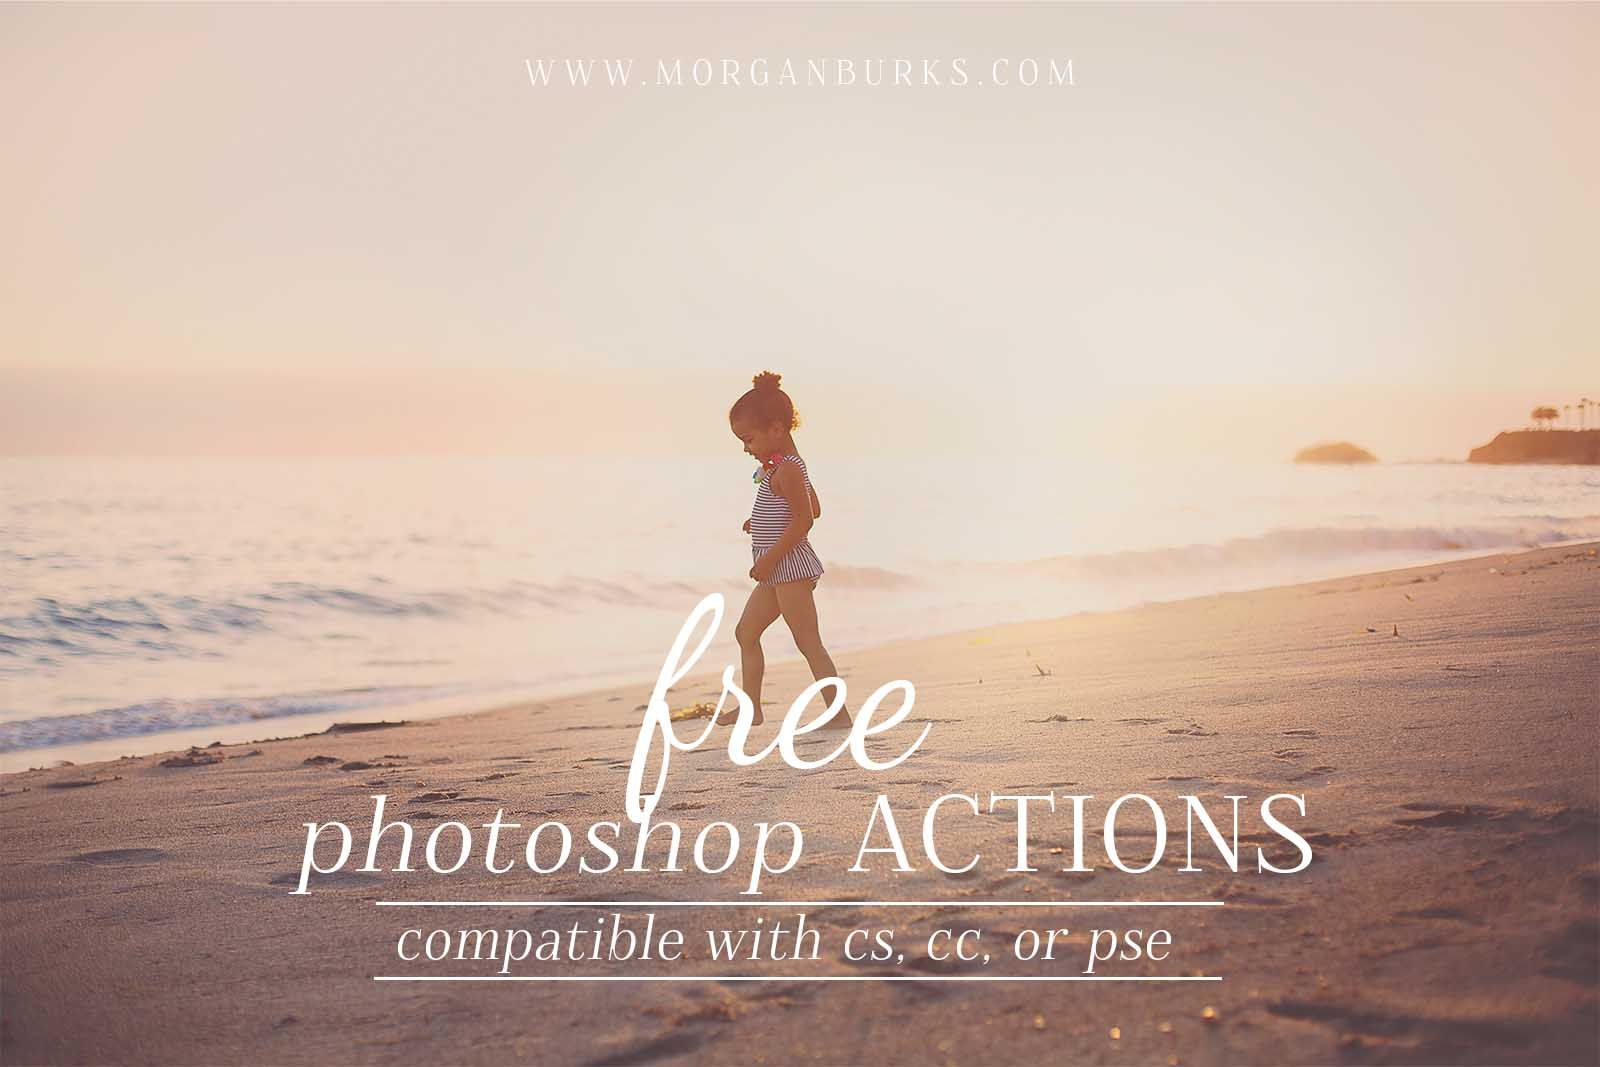 Free Photoshop Actions For Photographers (100)